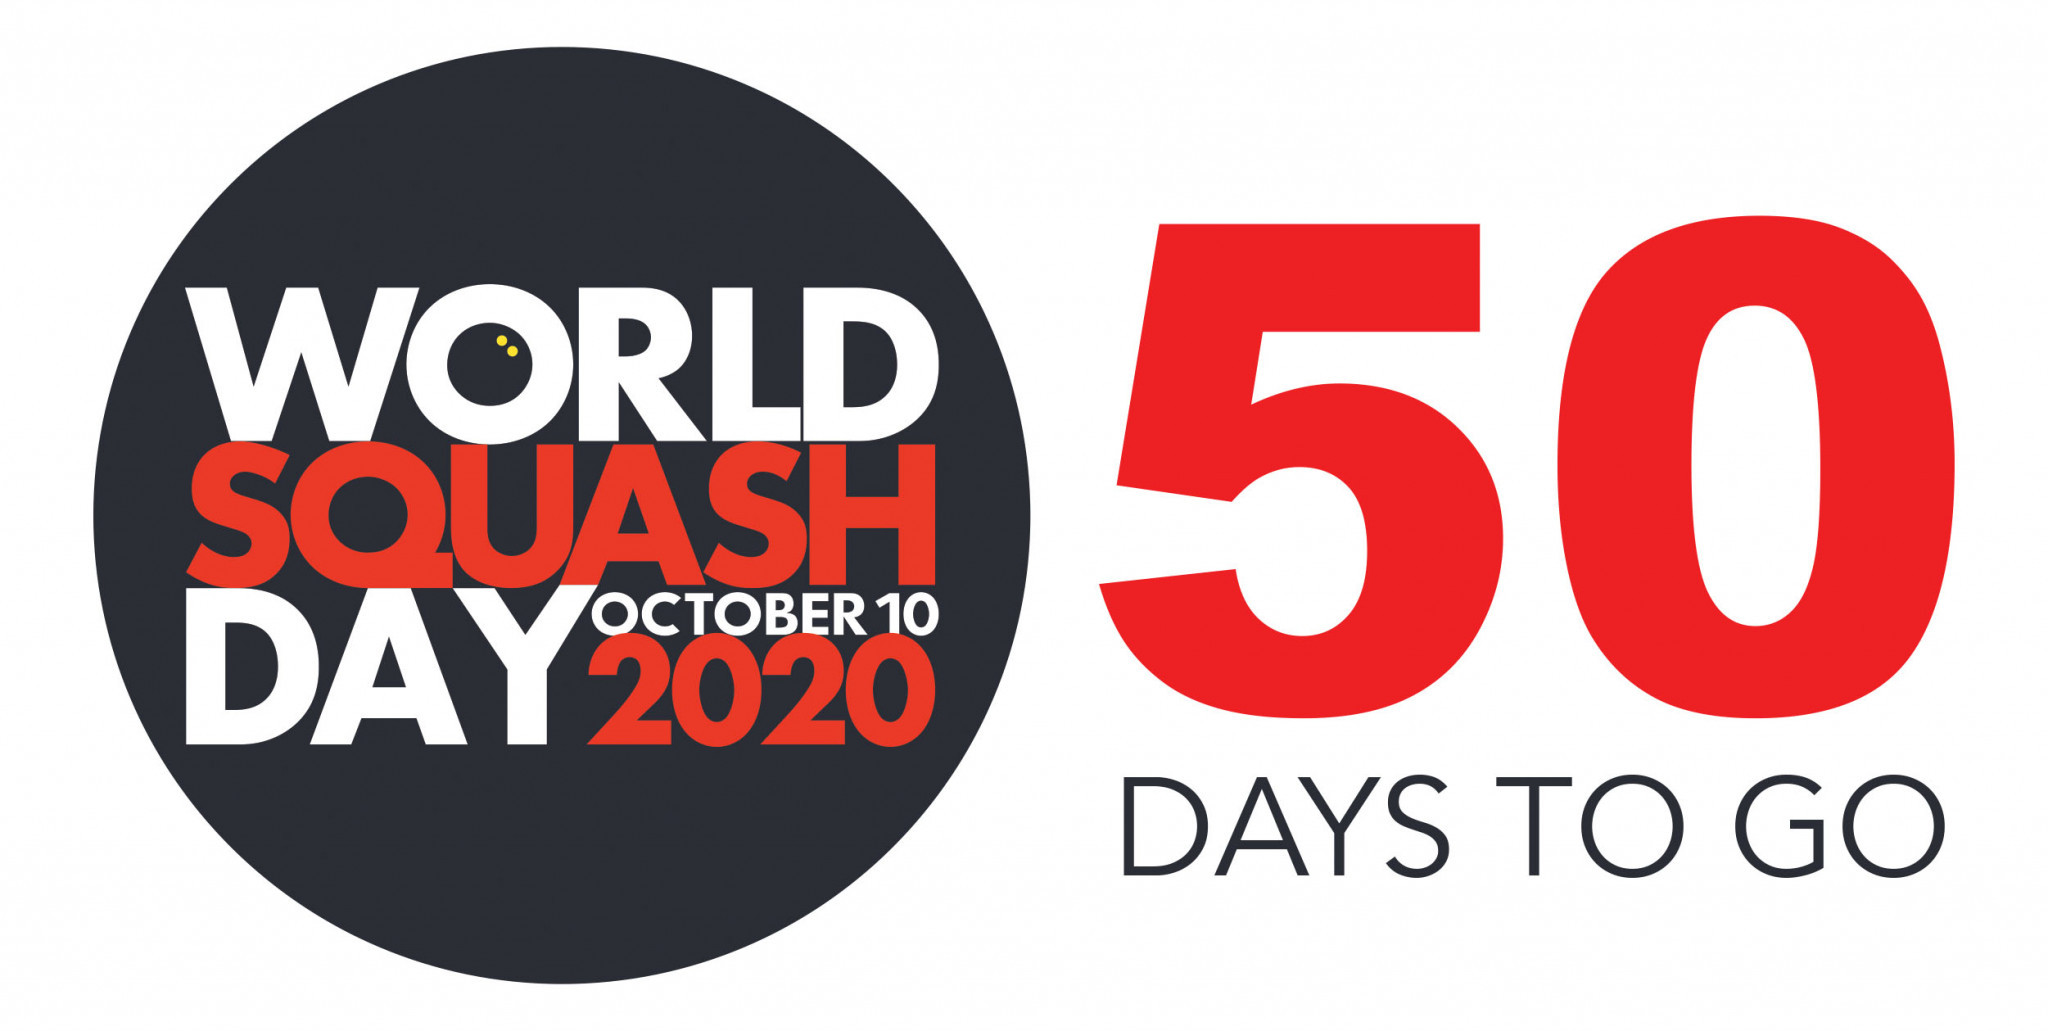 World Squash Day set to promote sport on social media in way never done before